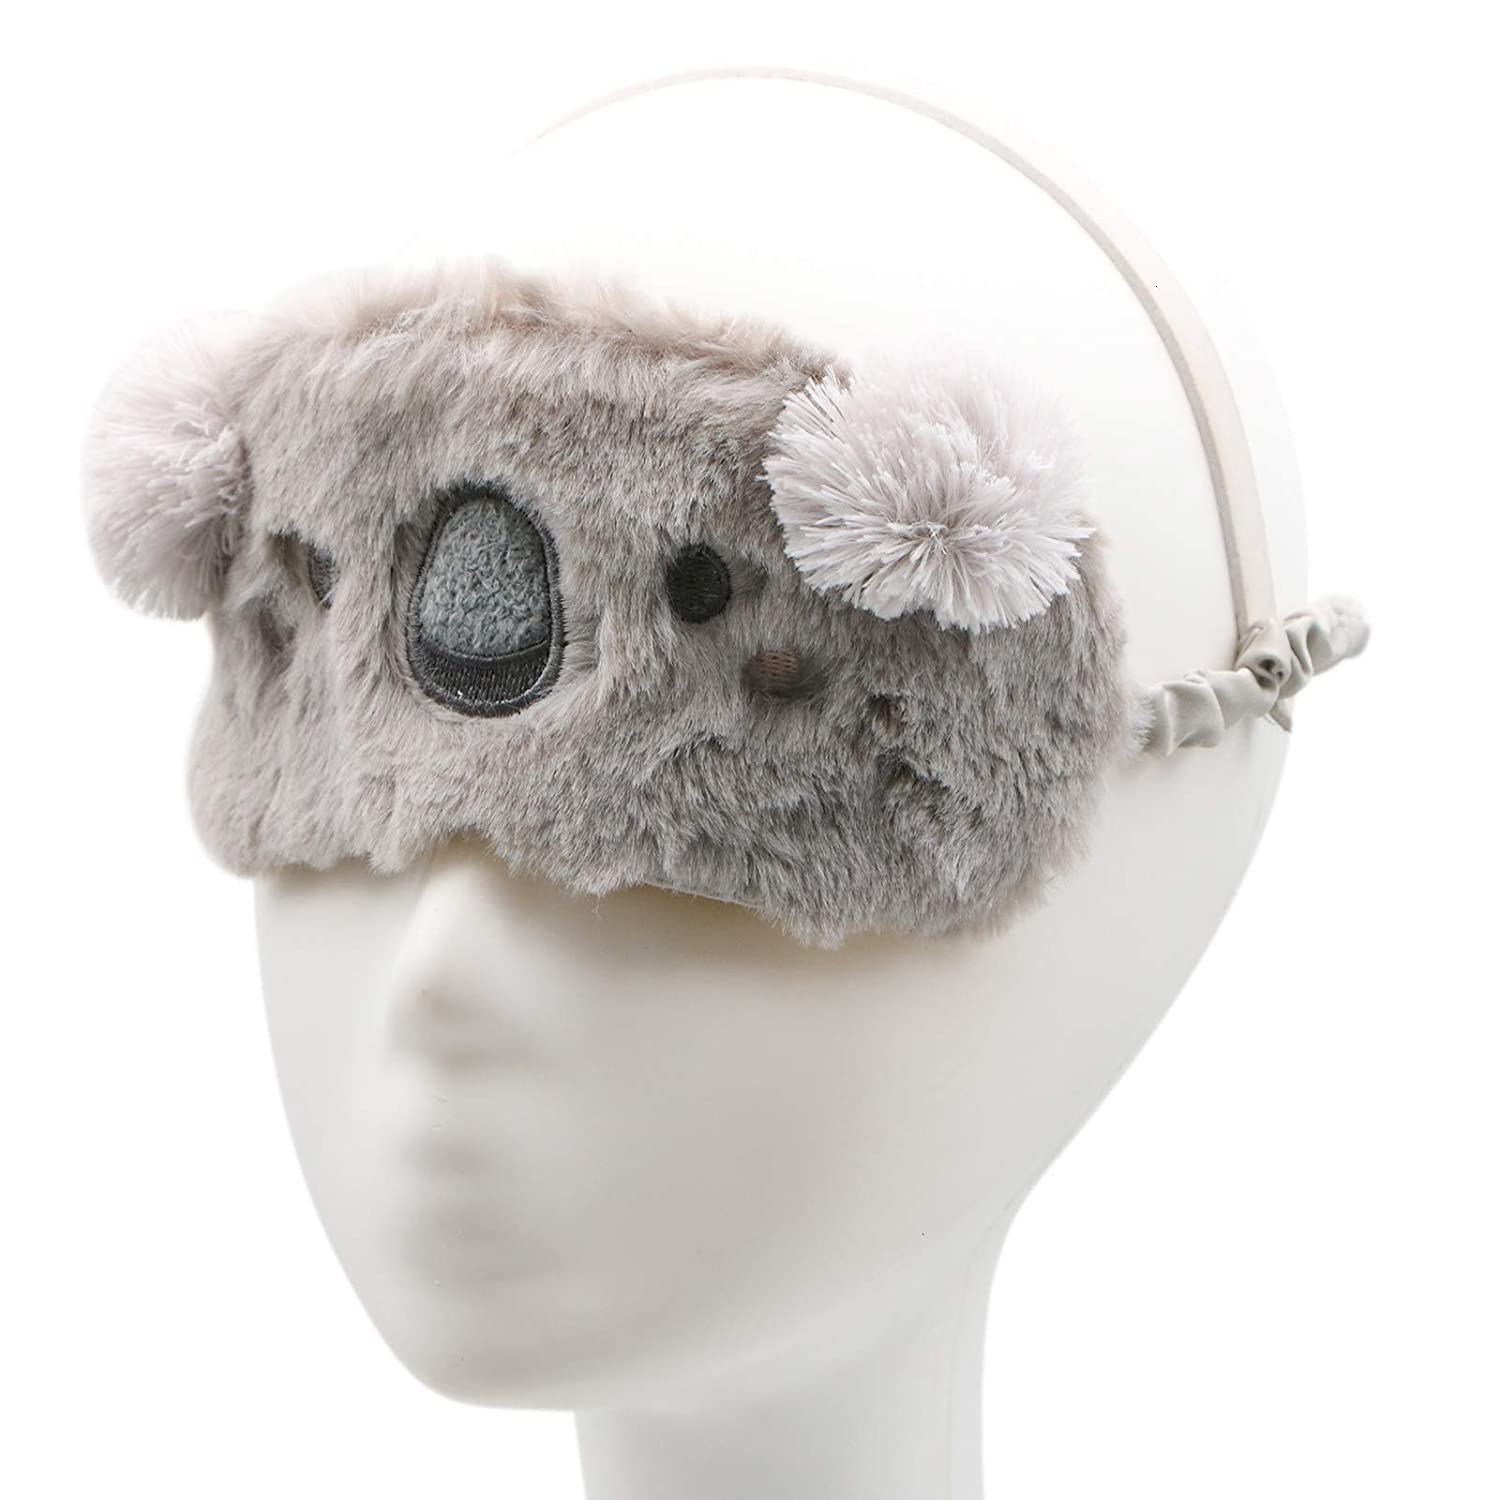 Amazon.com: WSSROGY Cute Koala Soft Plush Sleep Mask ...